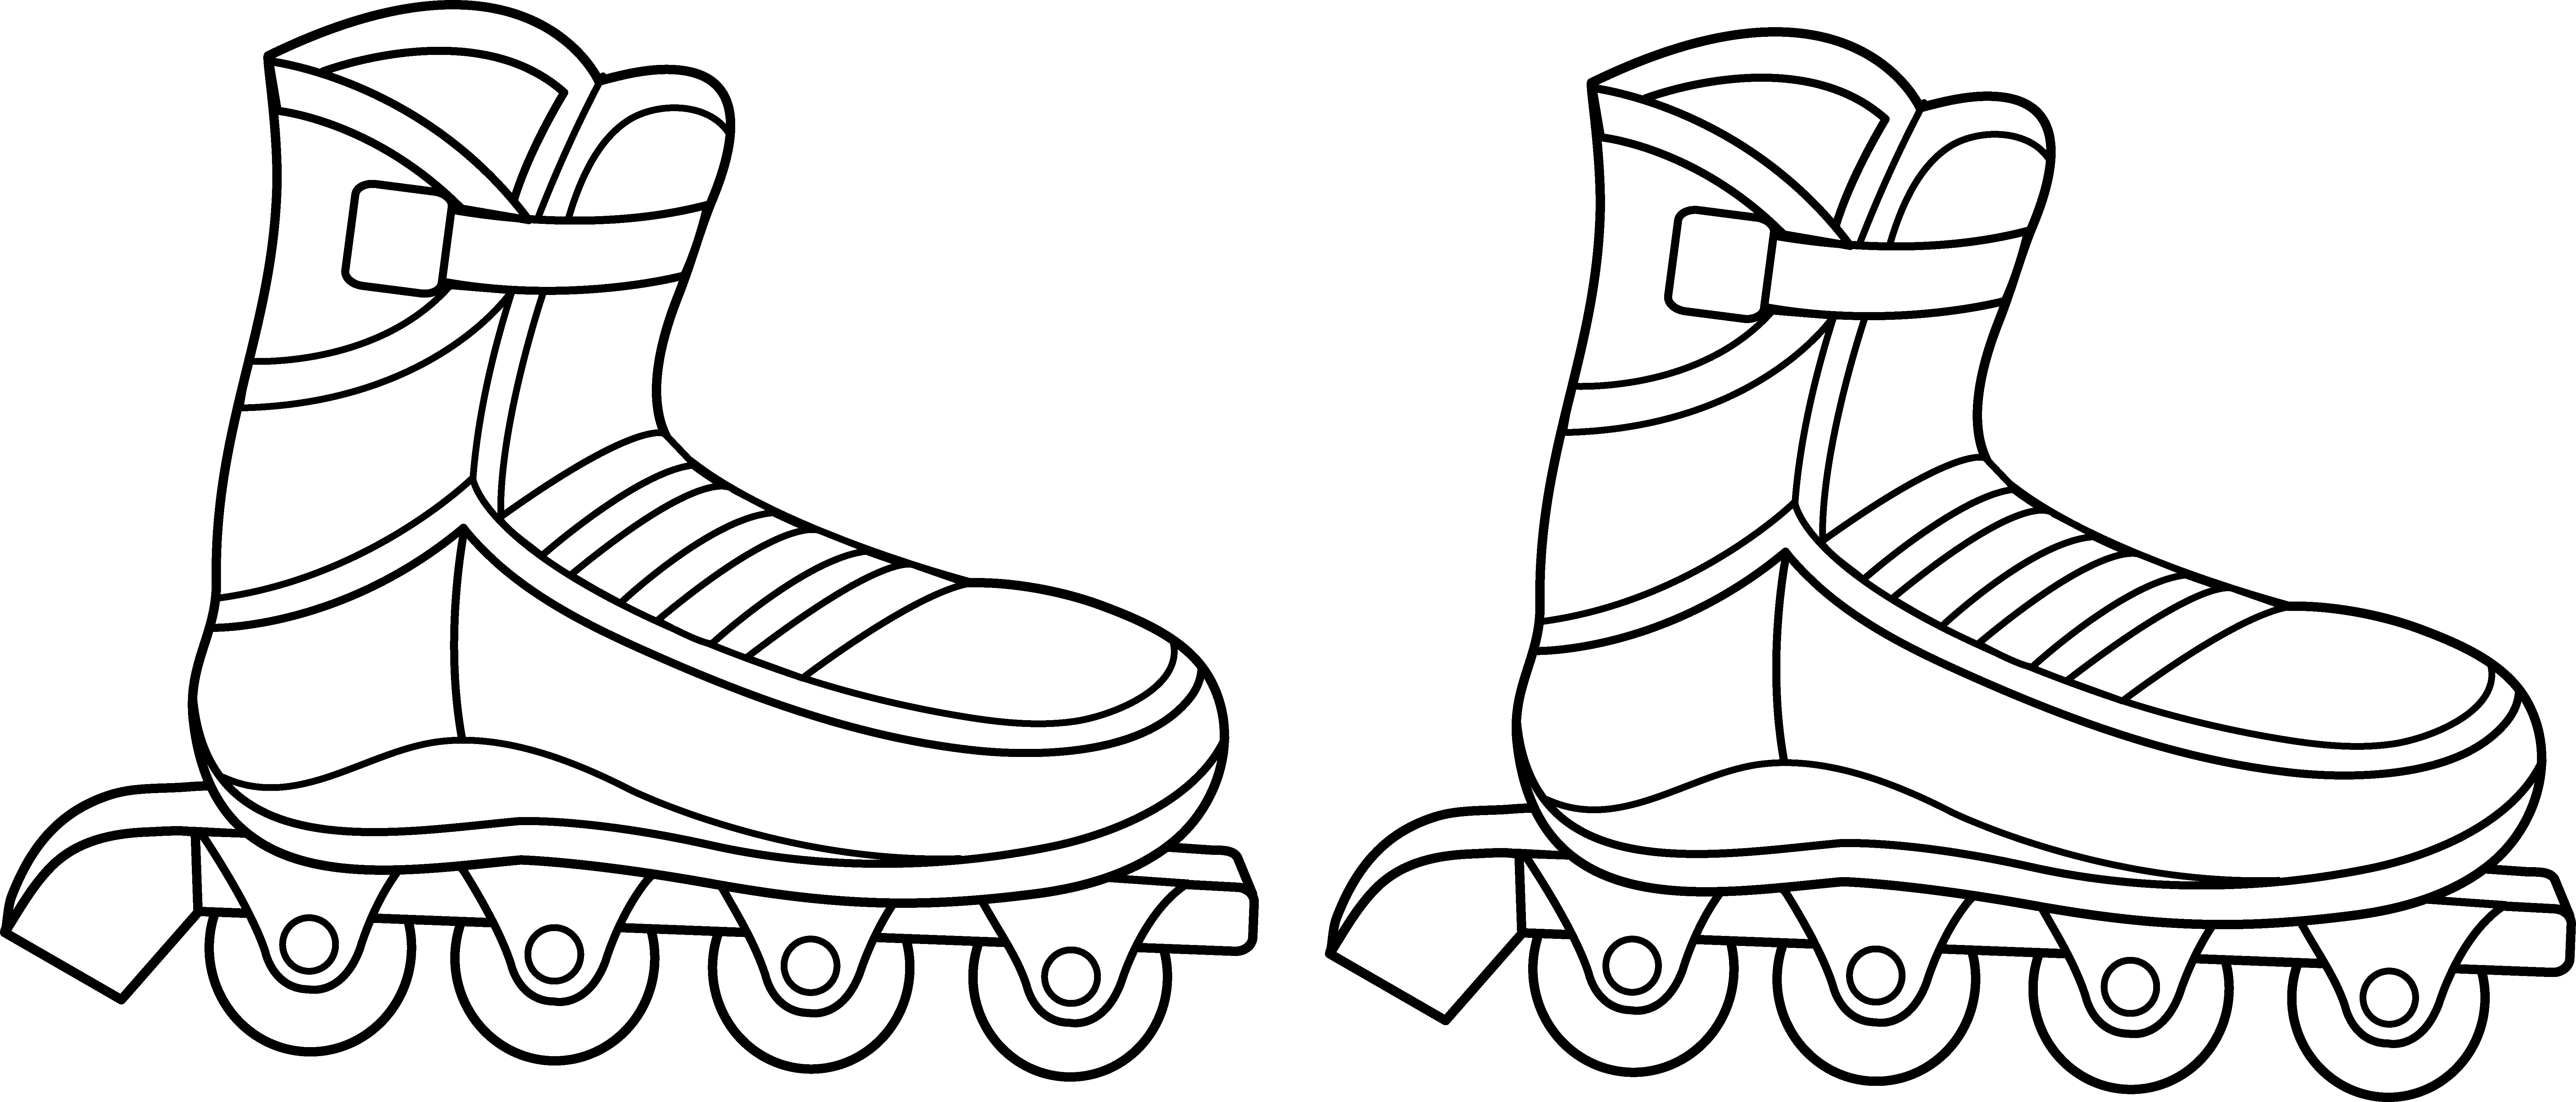 Barbie on roller skates - Coloring pages for you | 3411x7975